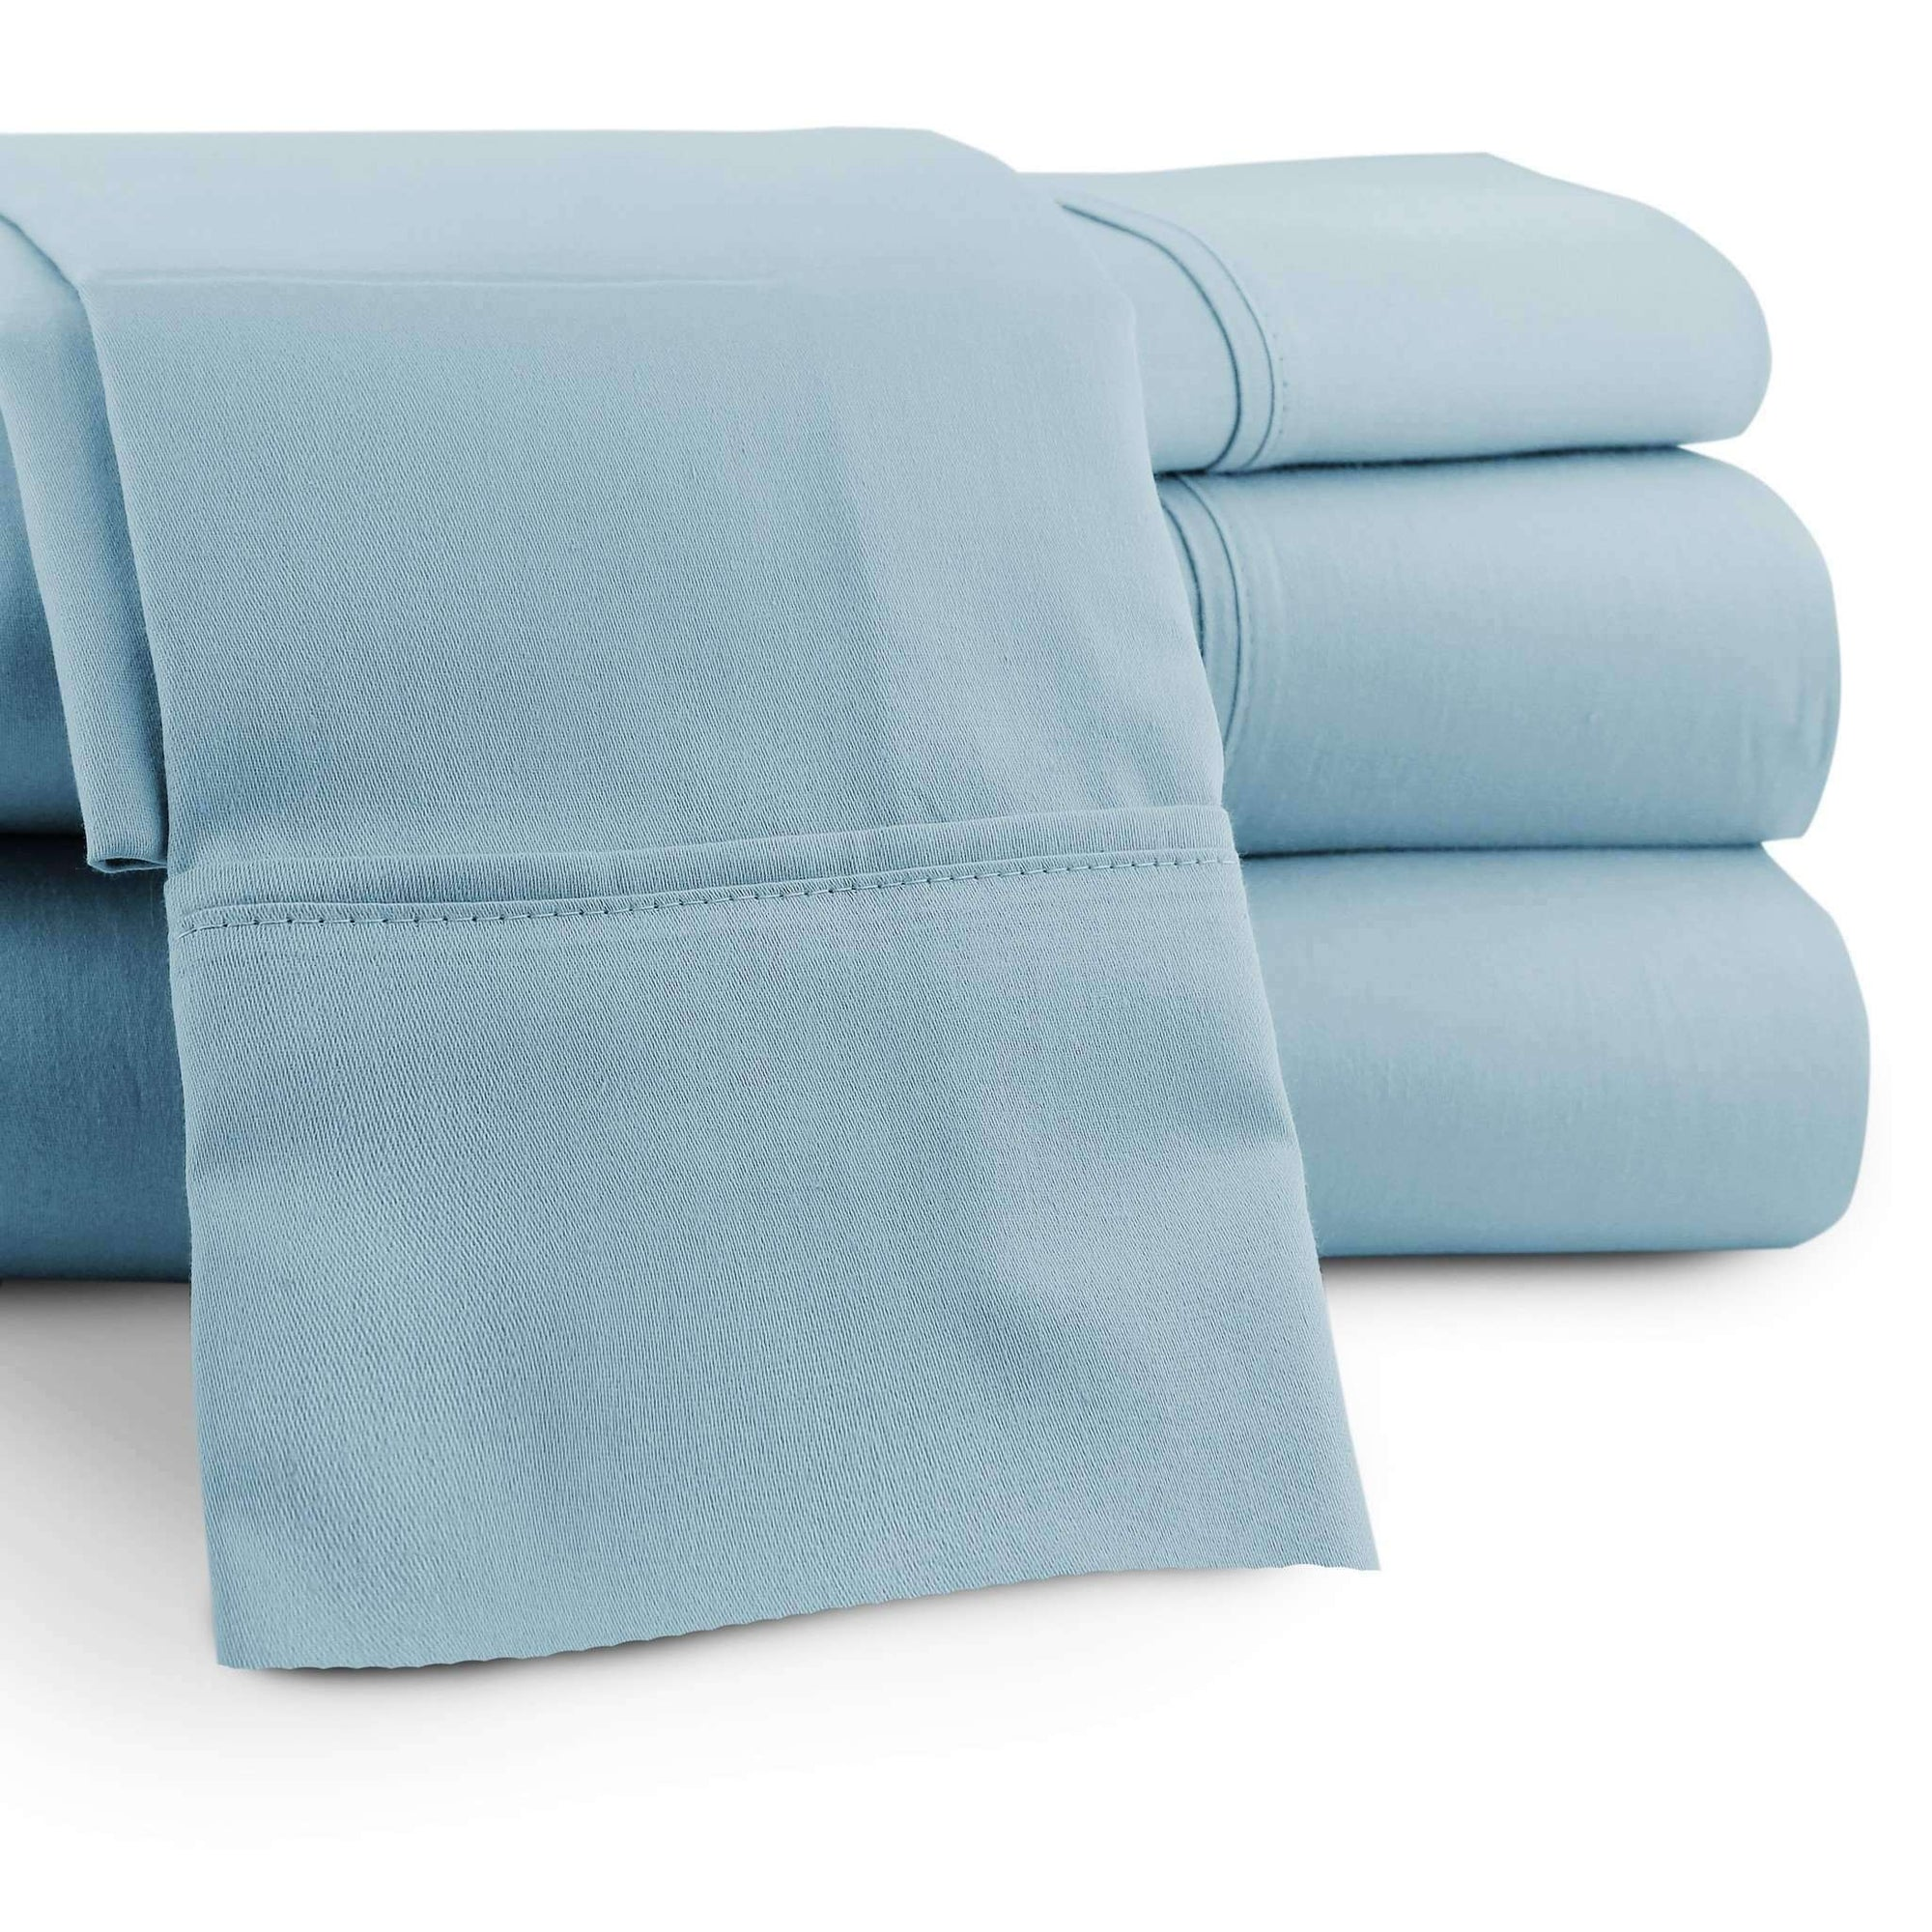 Capri Sheet Set - Luxor Linens